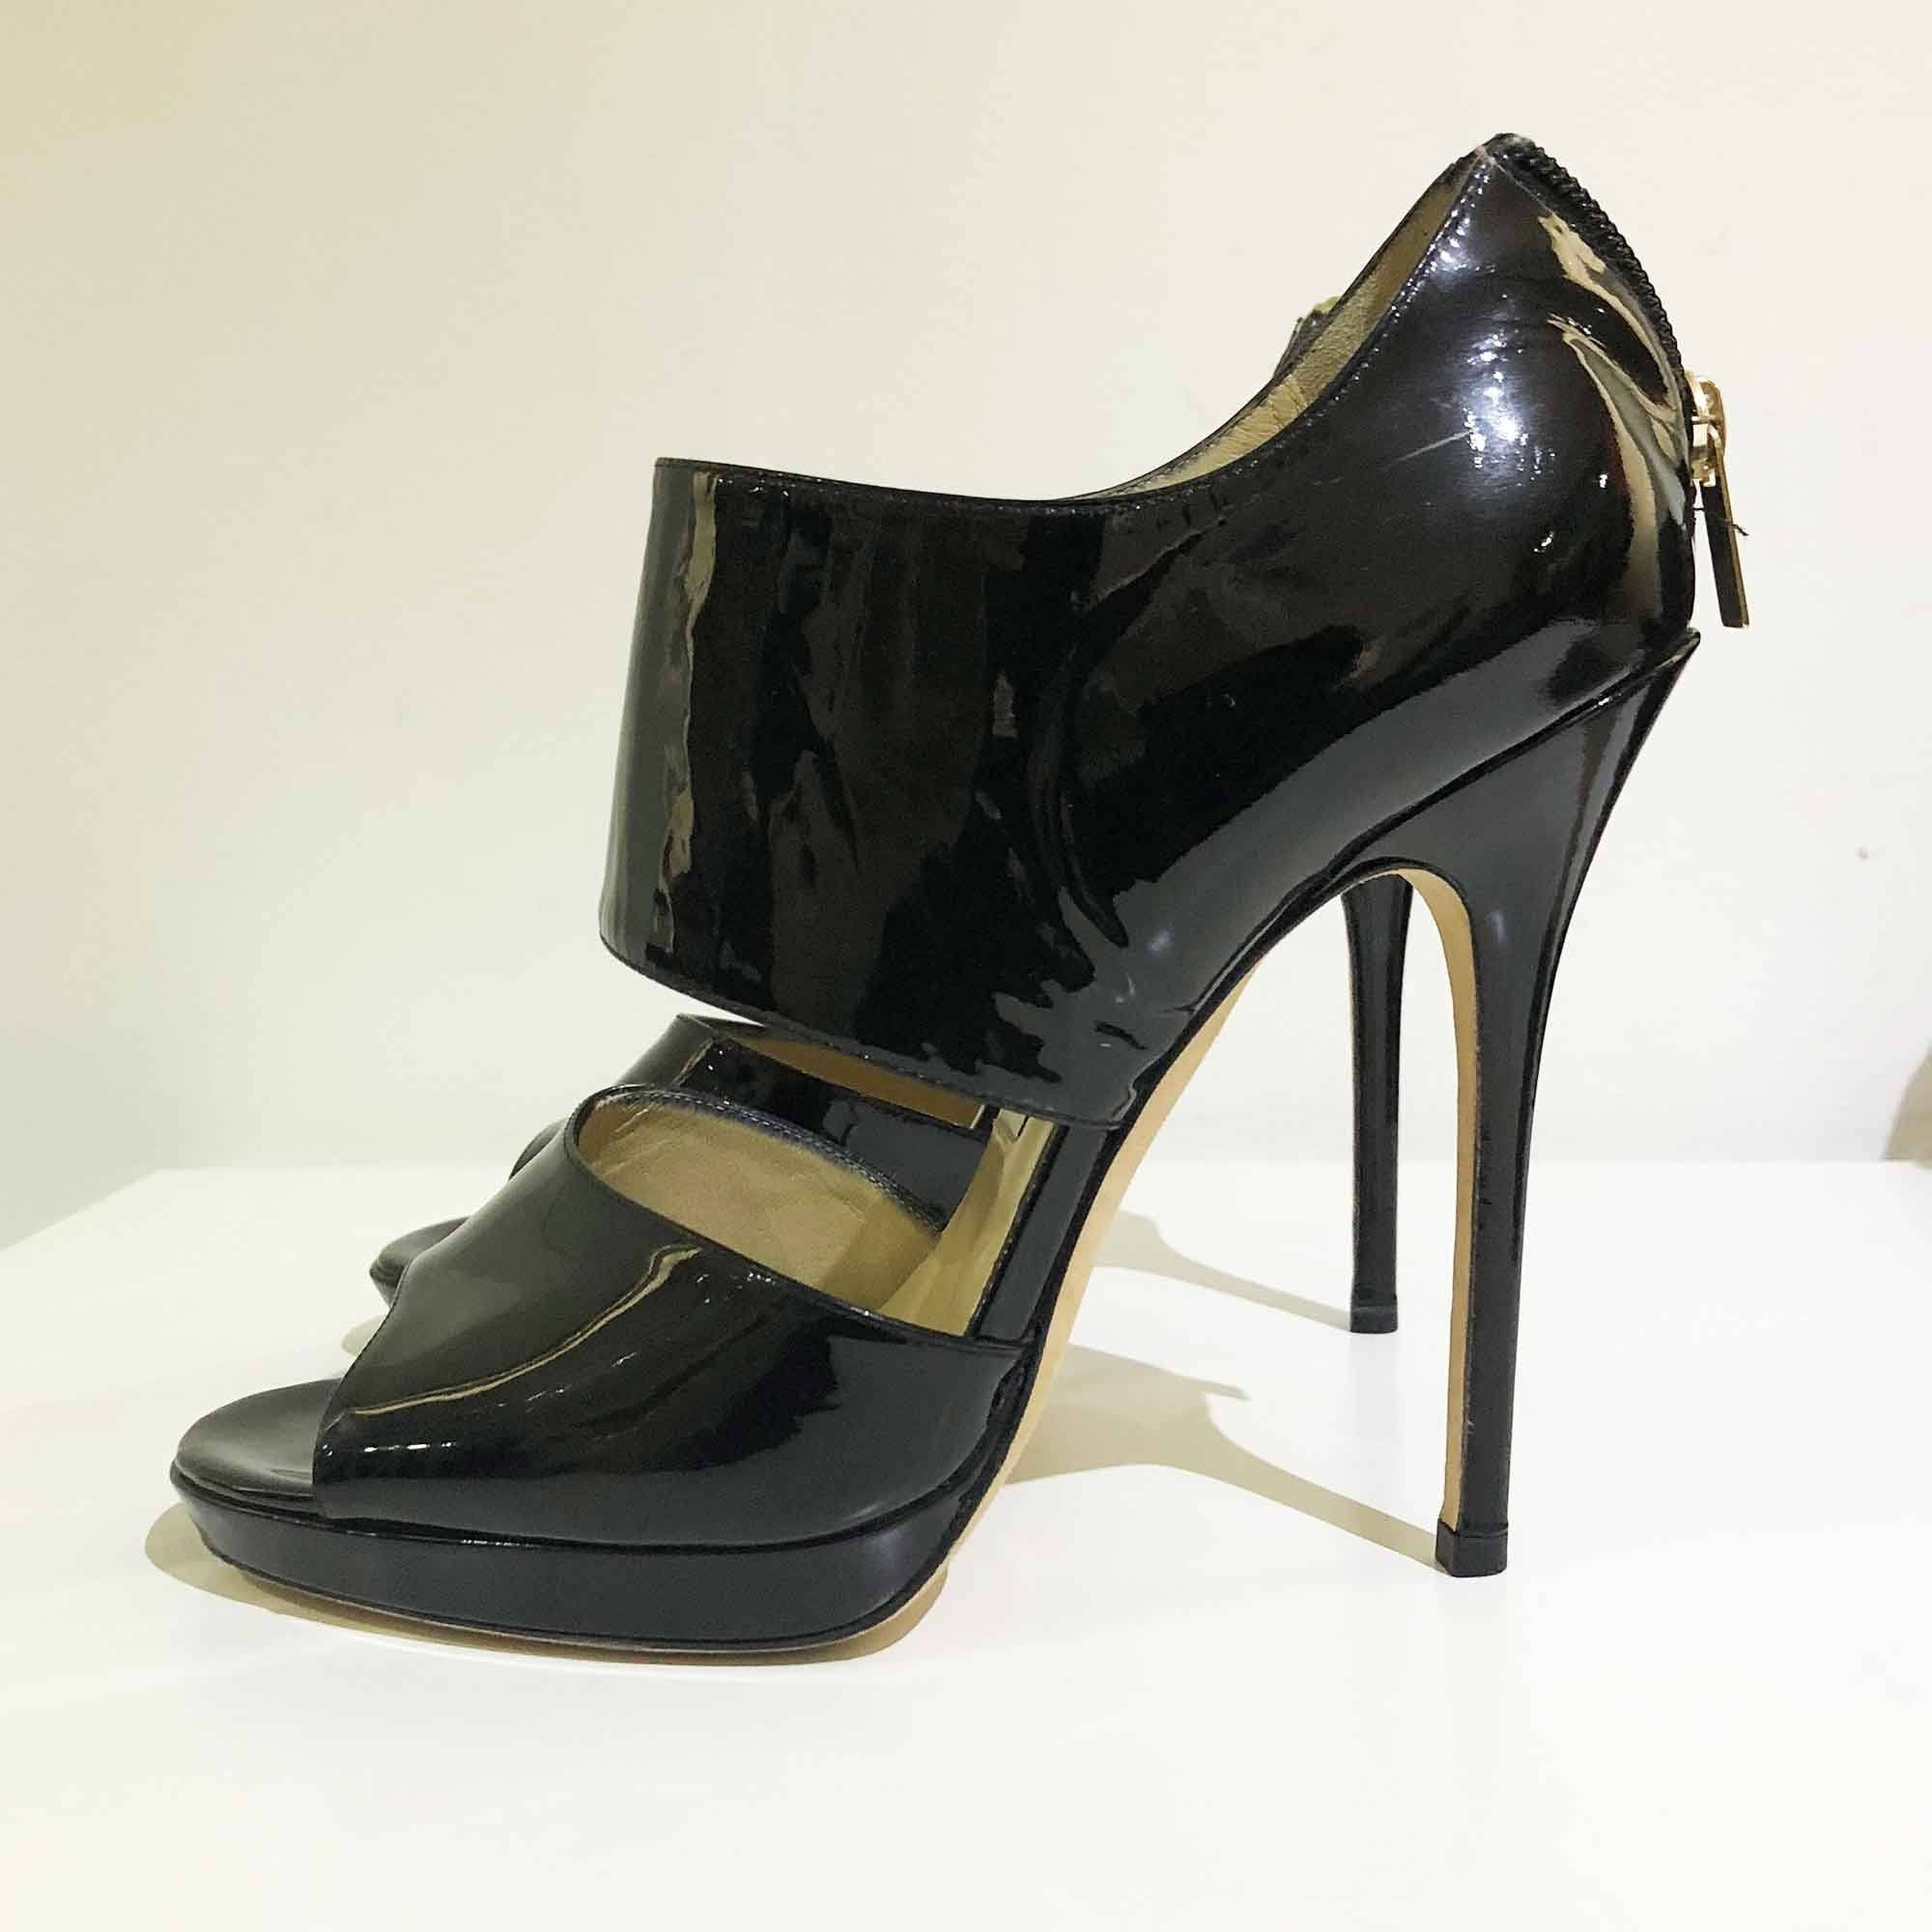 Jimmy Choo Black Patent Leather Cutout Booties